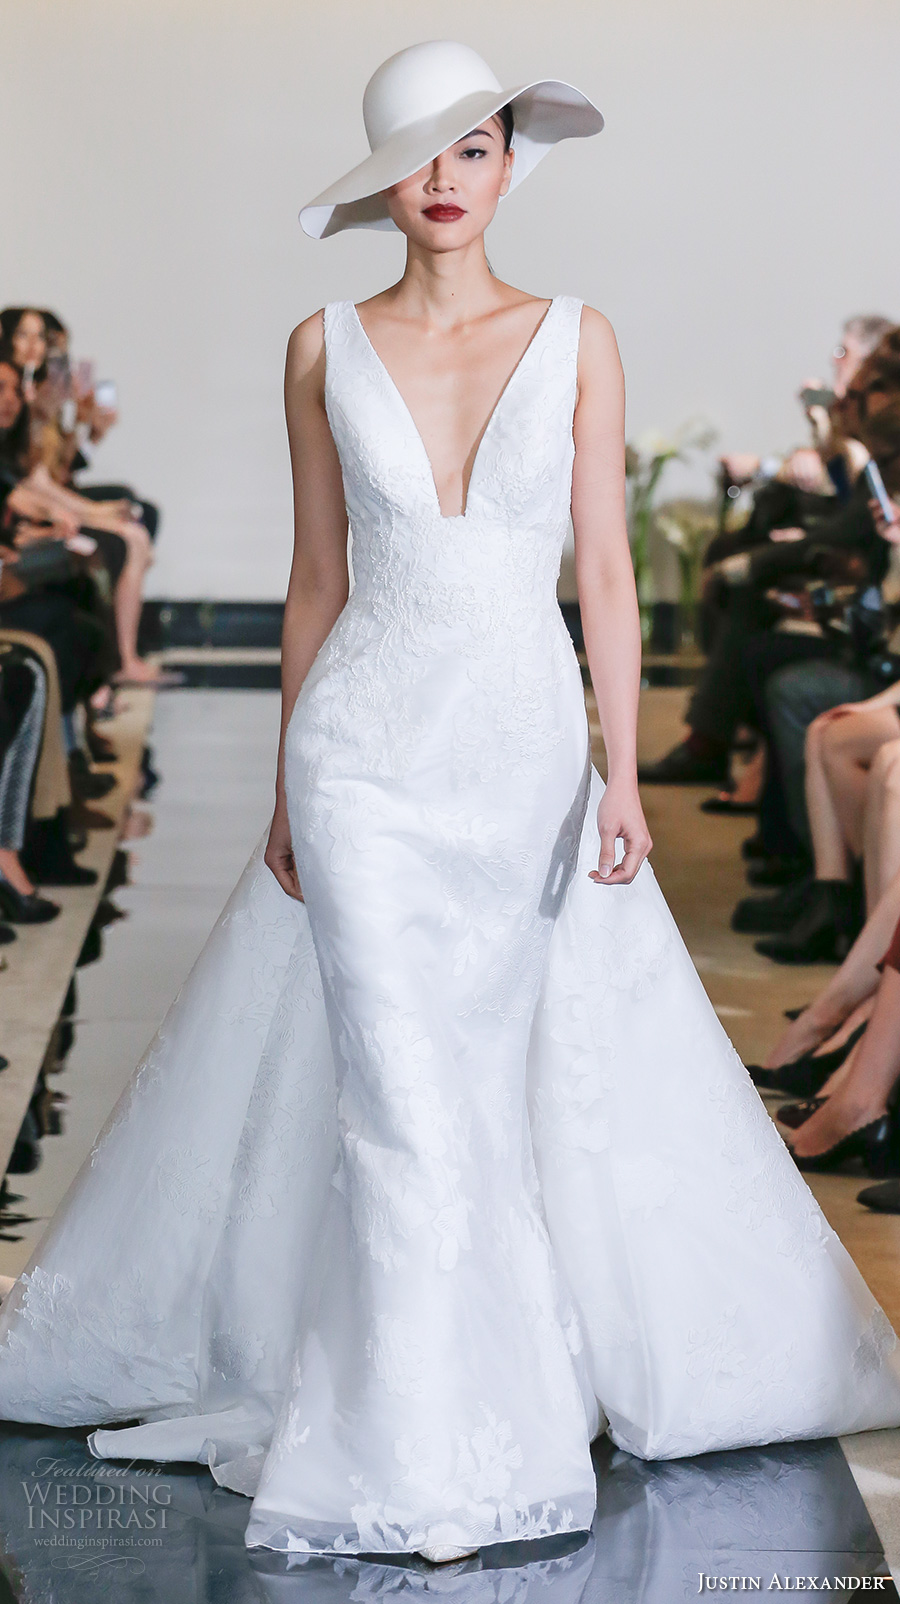 justin alexander spring 2018 bridal sleeveless deep plunging v neck light embellishment elegant fit and flare wedding dress flare chapel train (19) mv